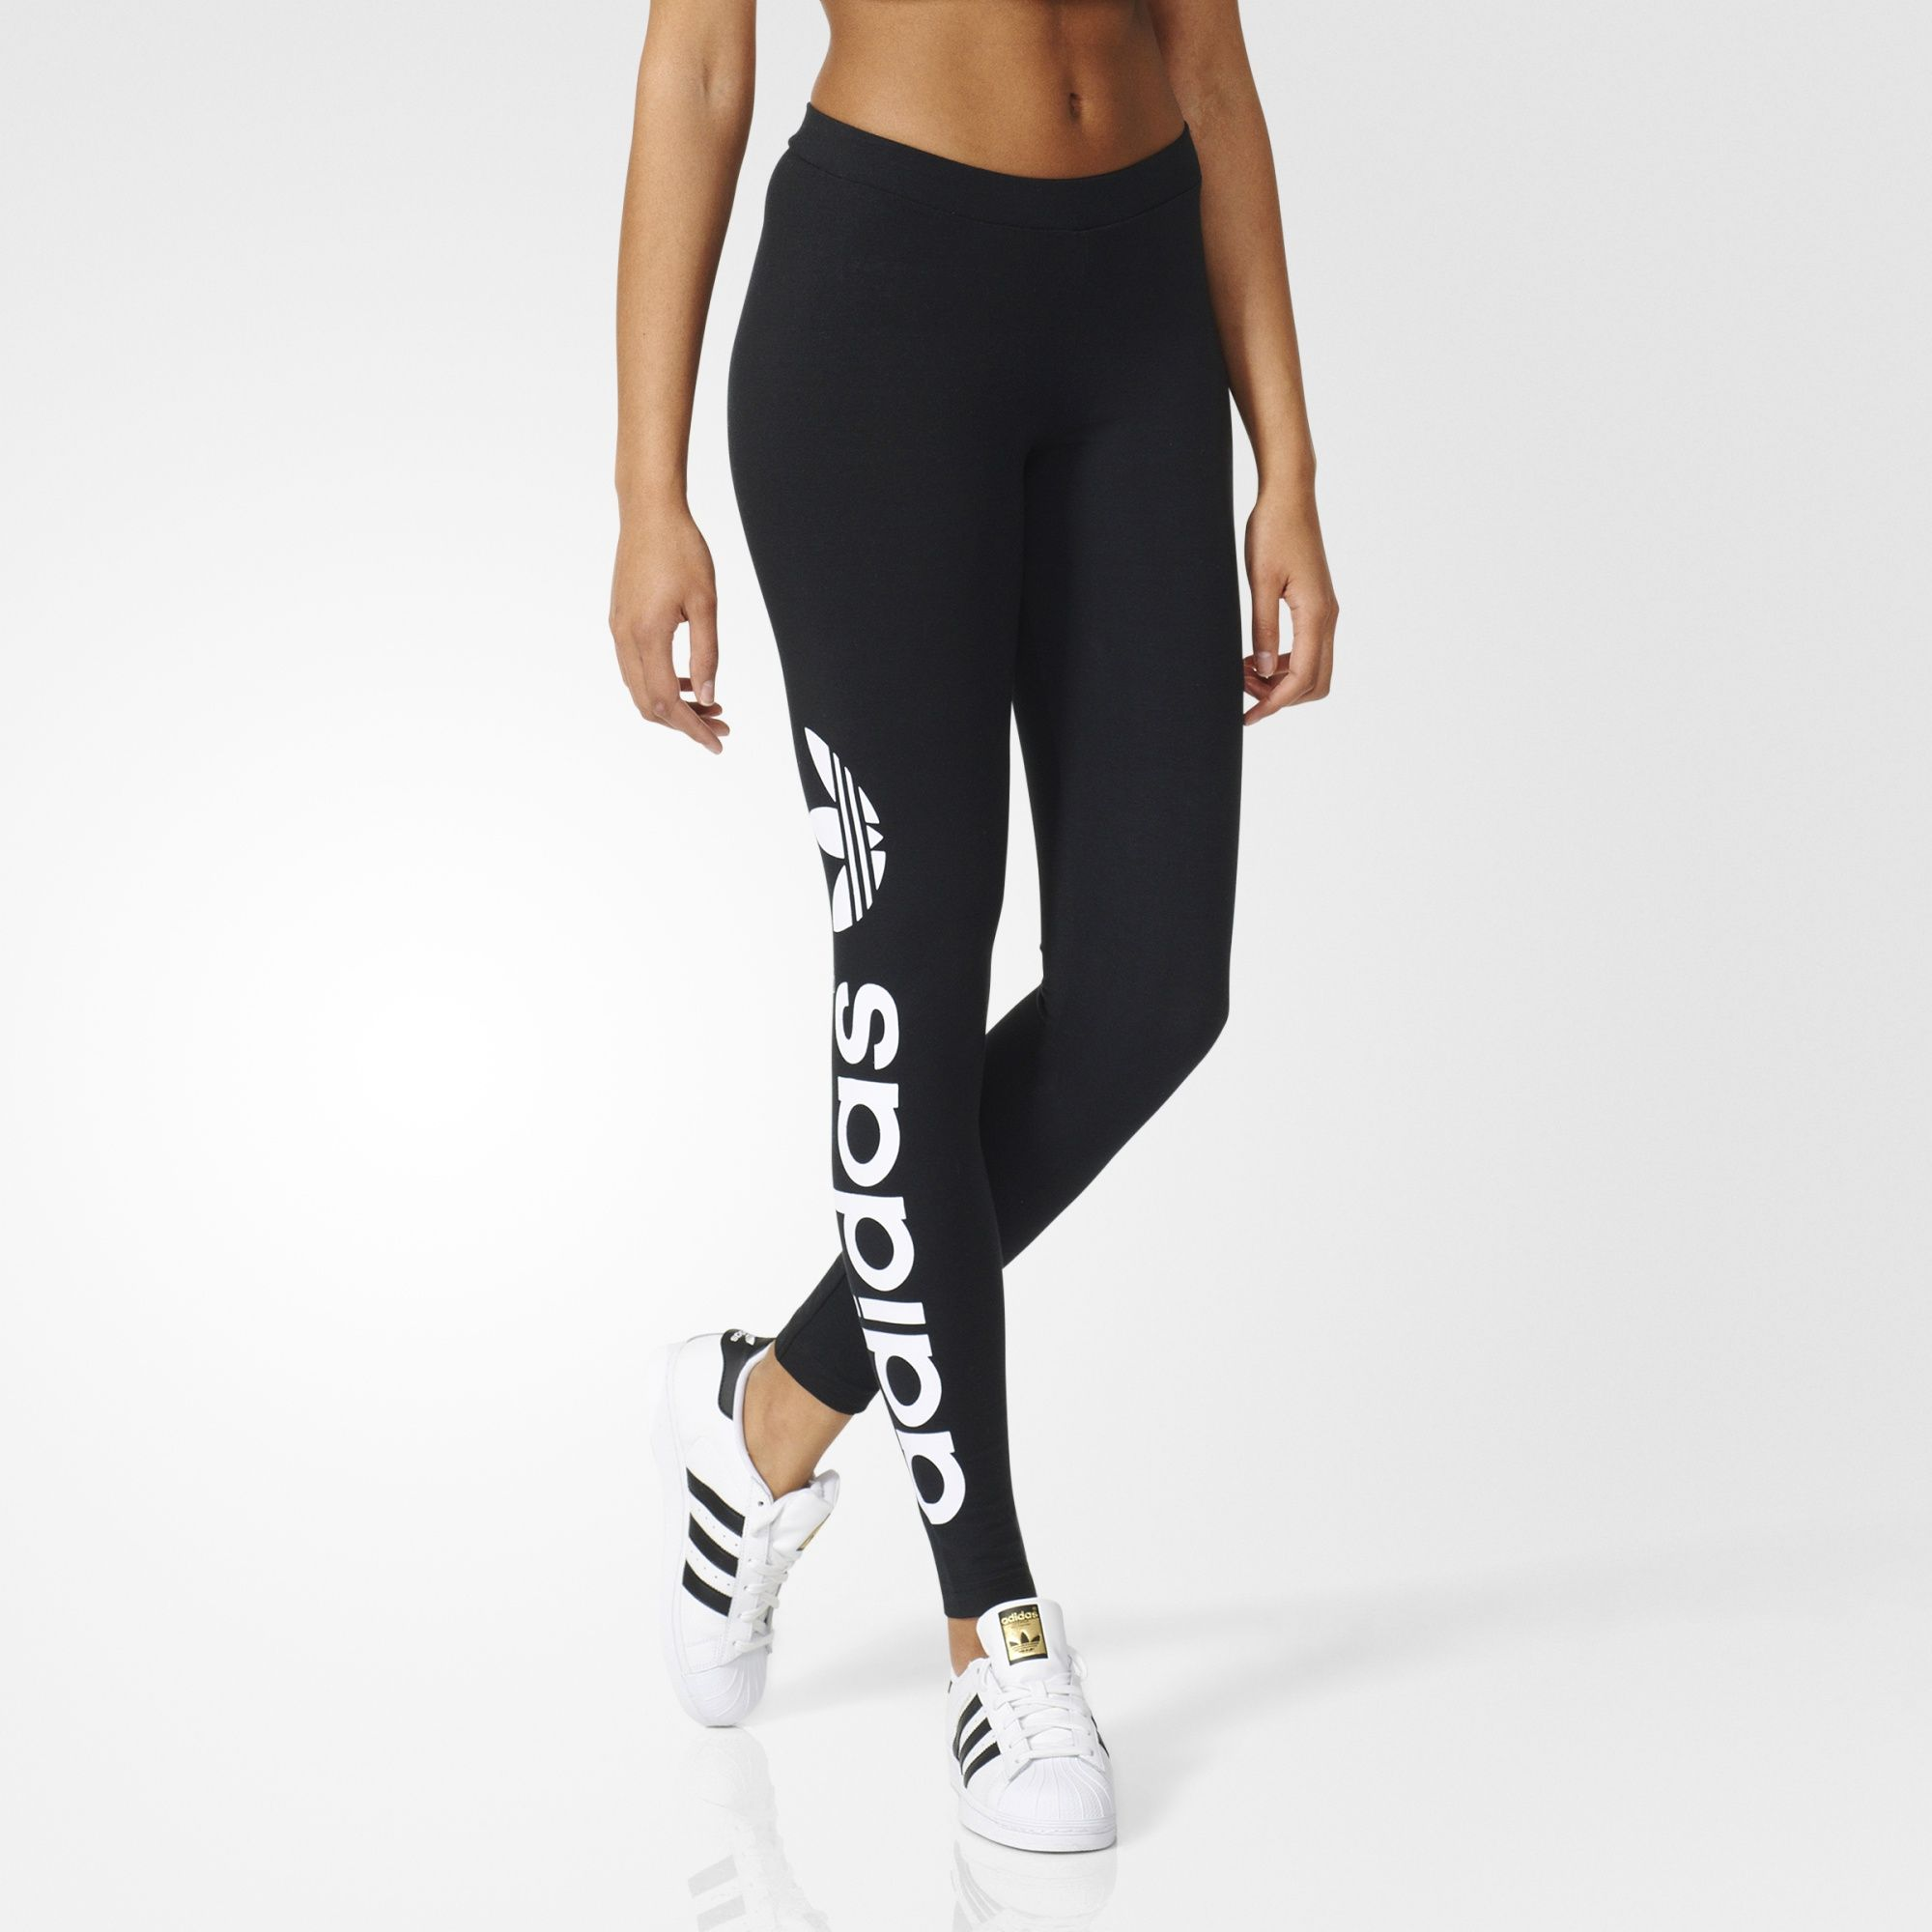 These women's leggings feature stretchy jersey fabric for